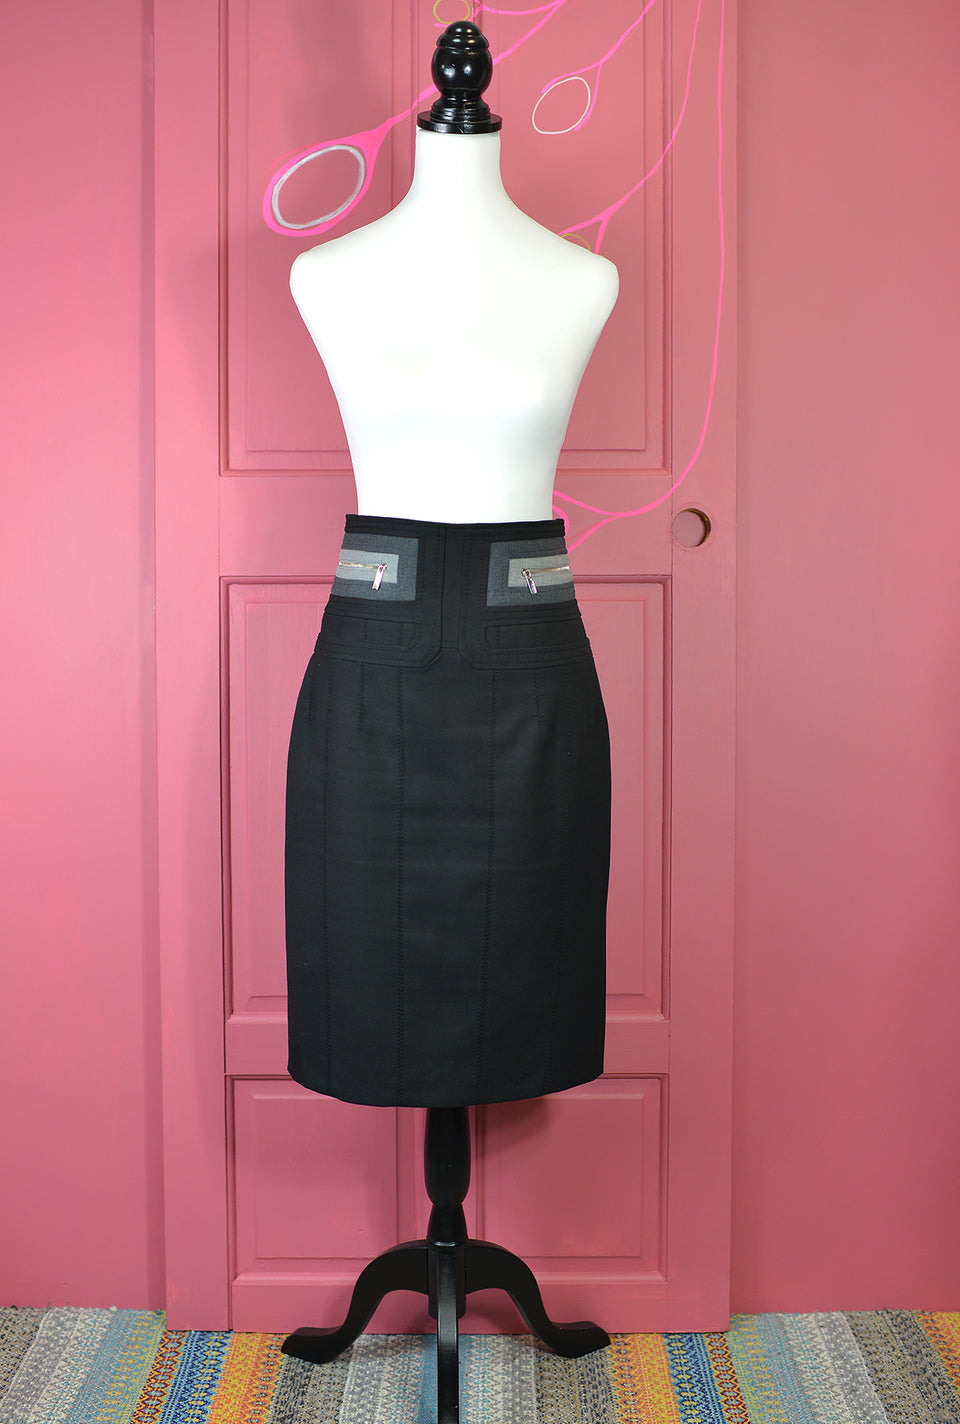 KAREN MILLEN Women's Black Bodycon Skirt. Size 12. Pre-Loved.